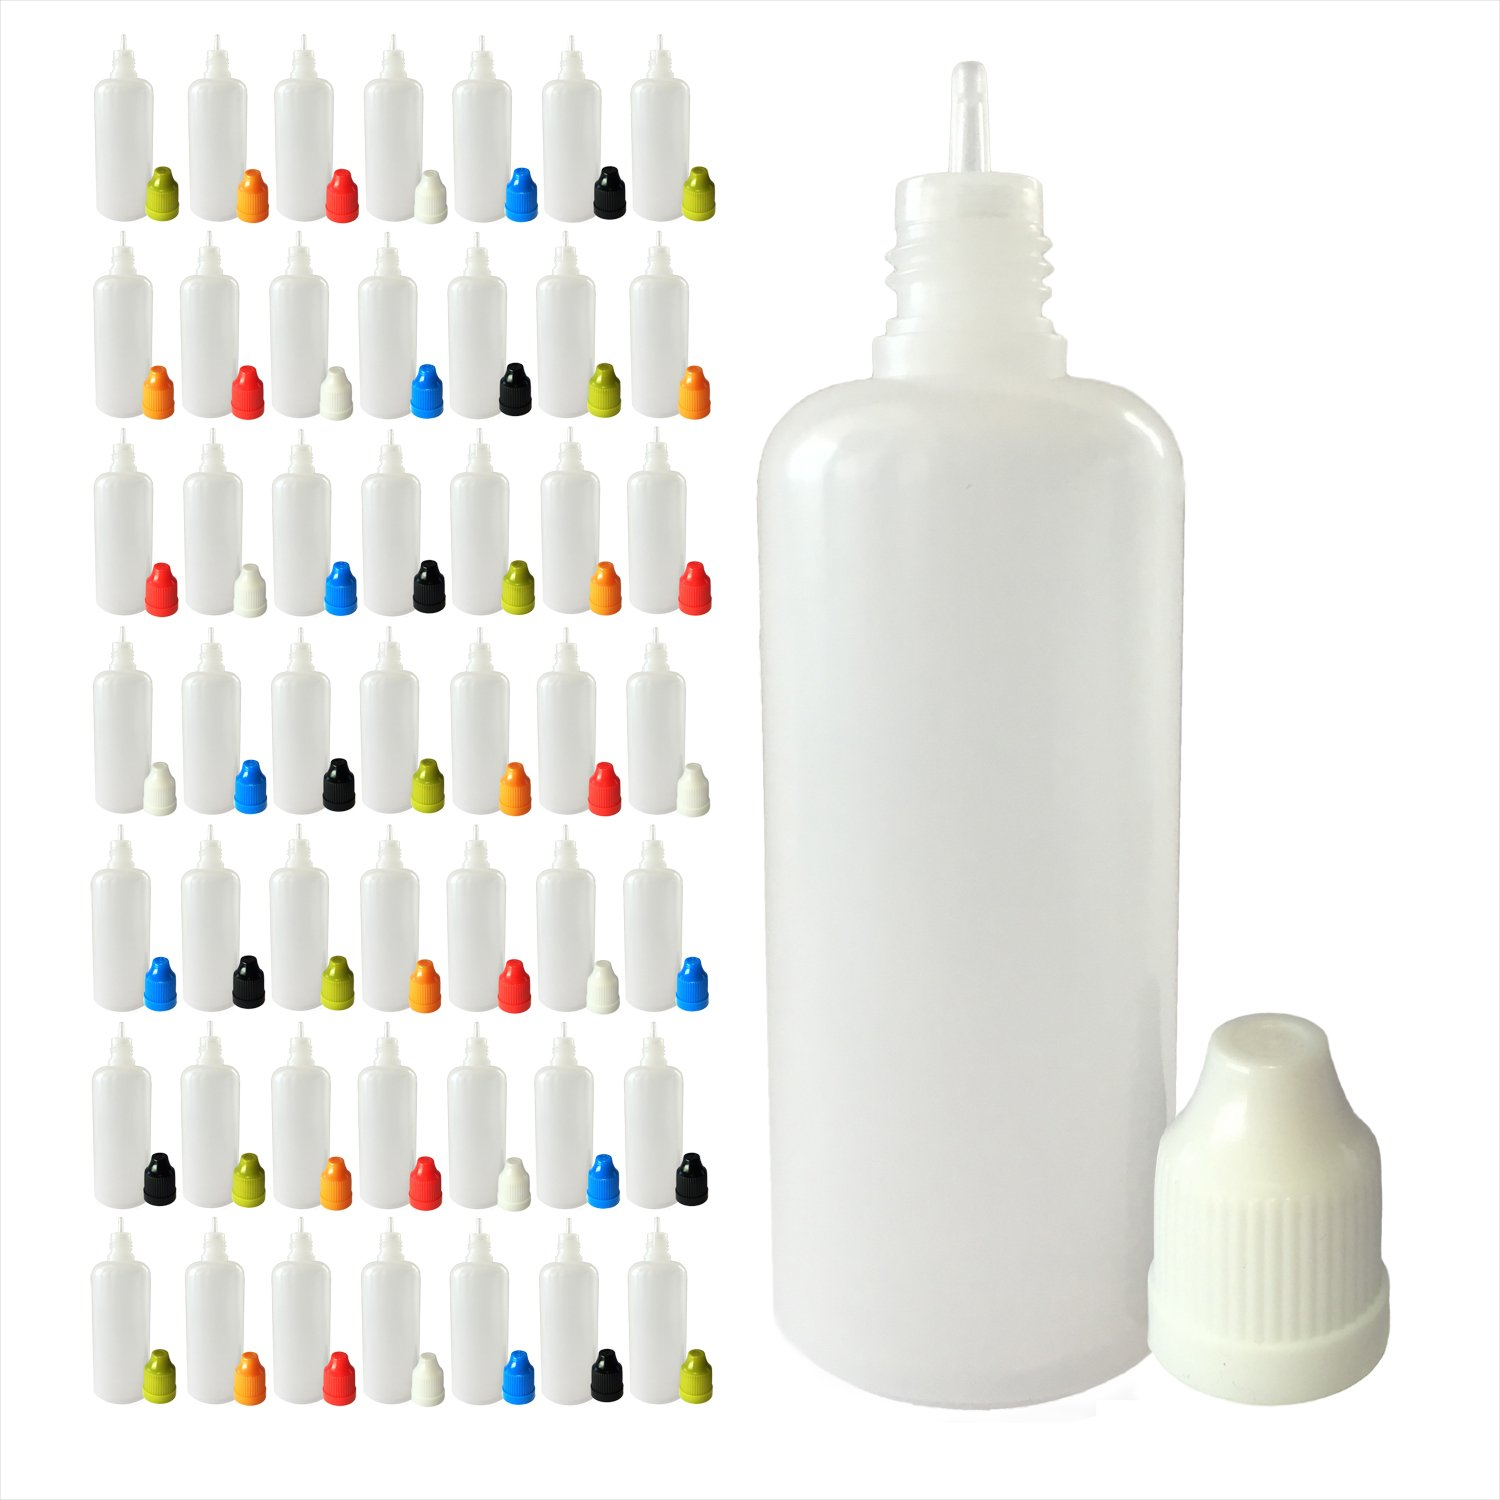 510 Centralドロッパーボトル 60mL 低密度ポリエチレン樹脂 細い先端 50 Pack LTTBottle60mL50Multi B01M2BCNJZ 50 Pack|Multi Color Caps Multi Color Caps 50 Pack